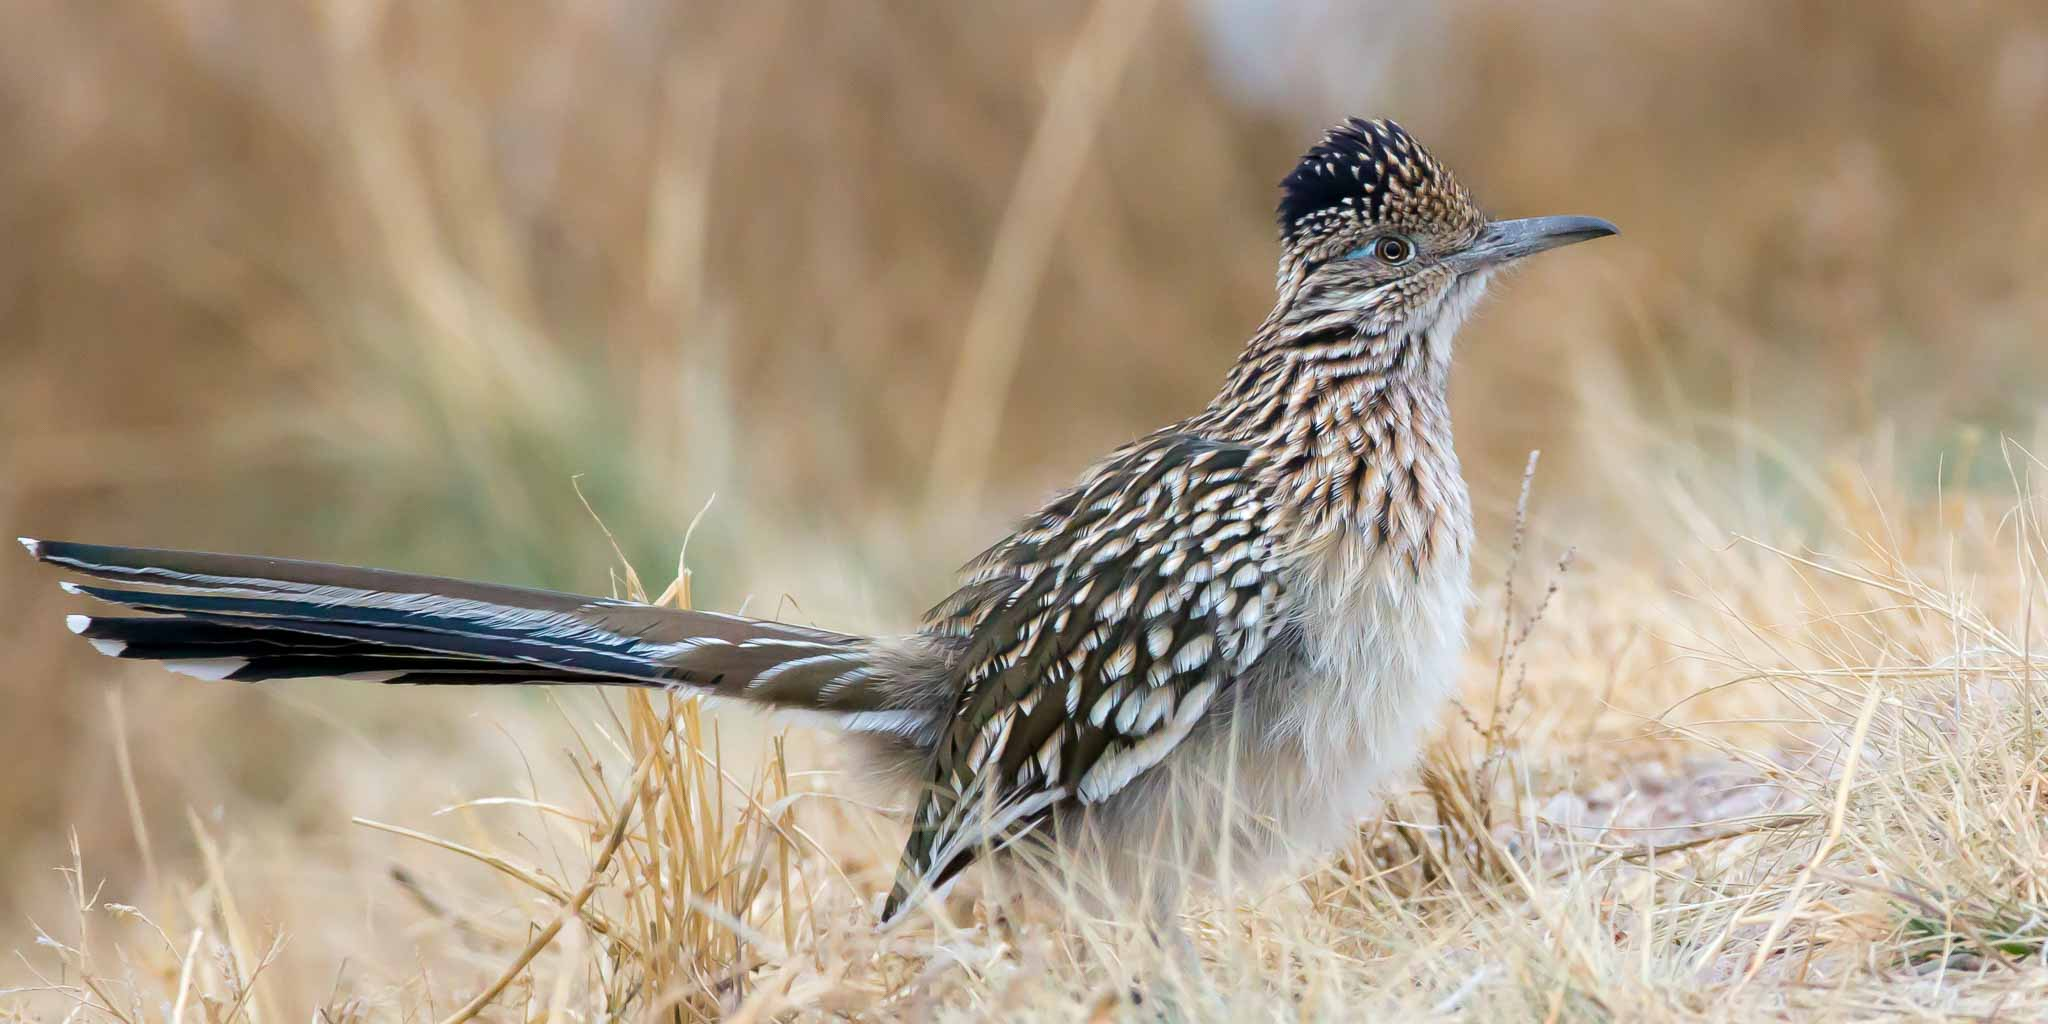 Greater Roadrunner, Bosque del Apache National Wildlife Refuge, San Antonio NM, December 12, 2013